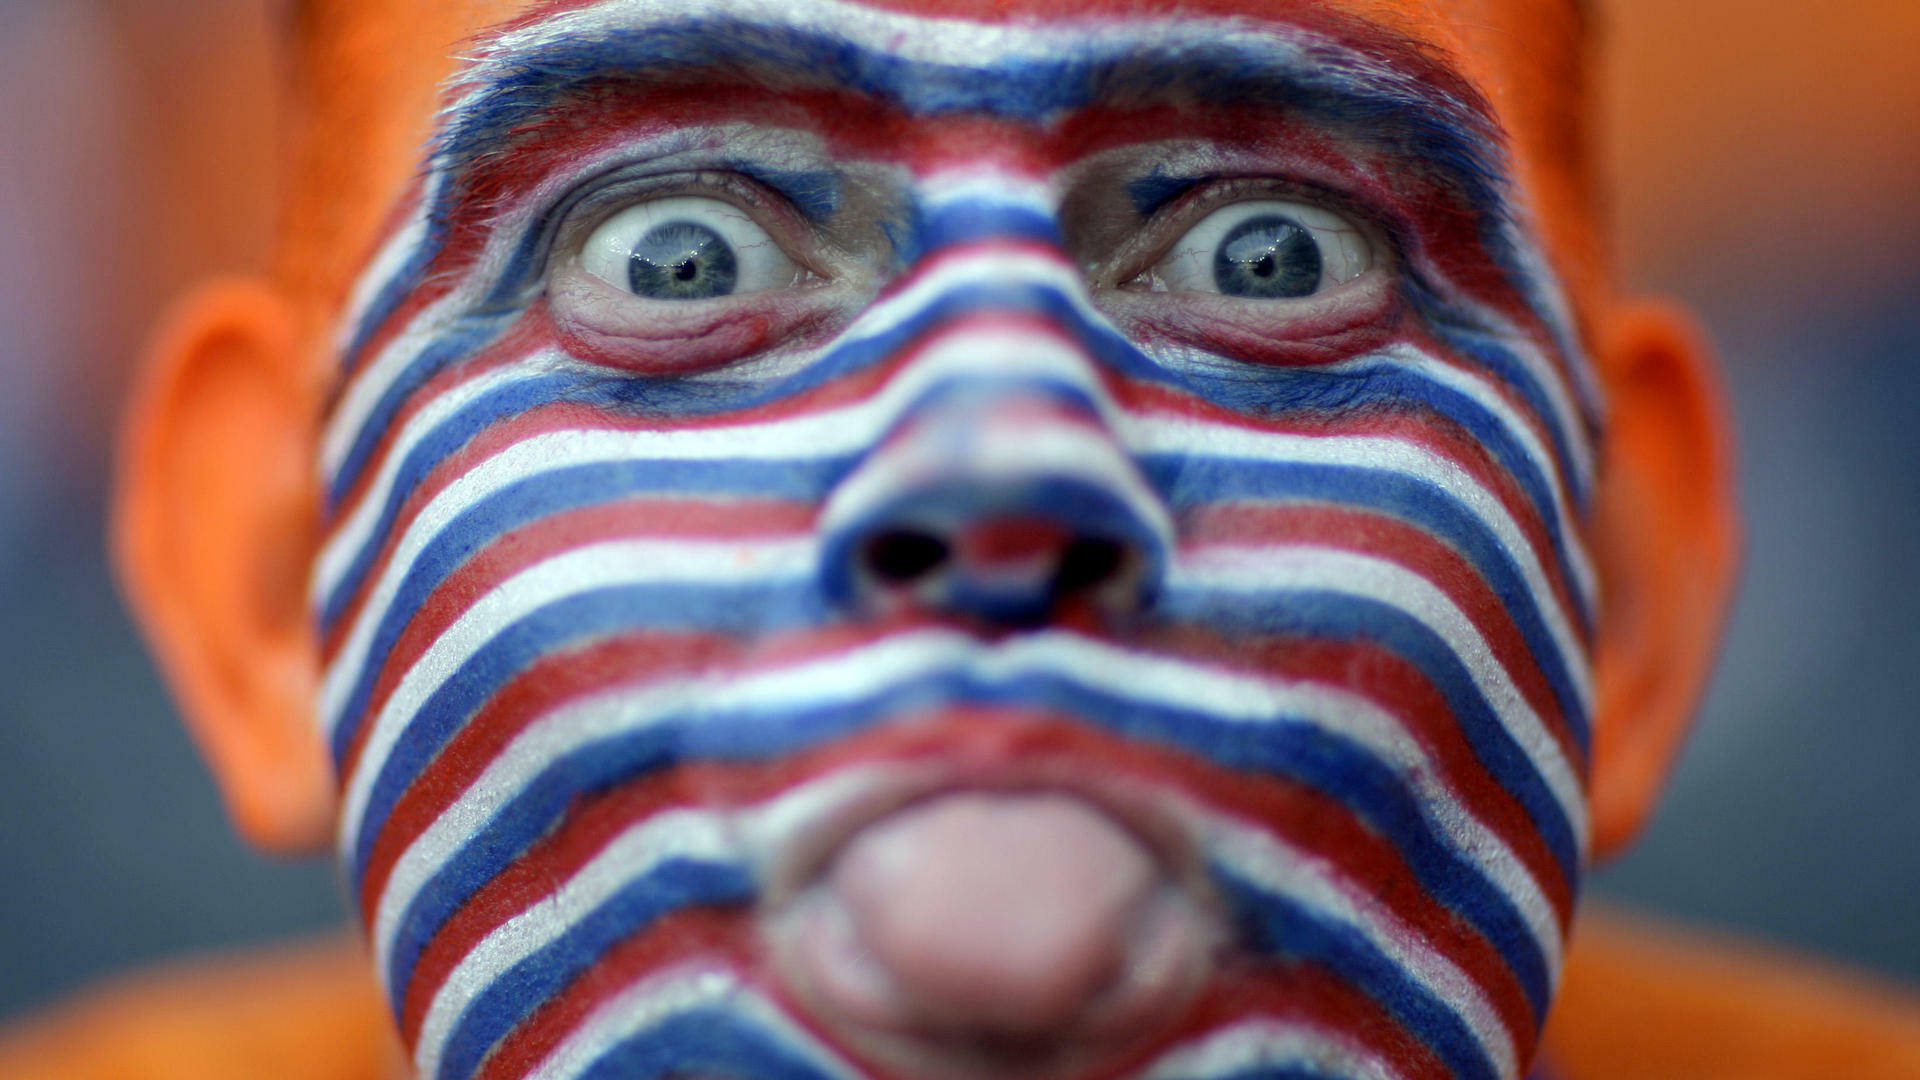 A Dutch supporter, his face painted in the colors of the national flag Quelle: AP